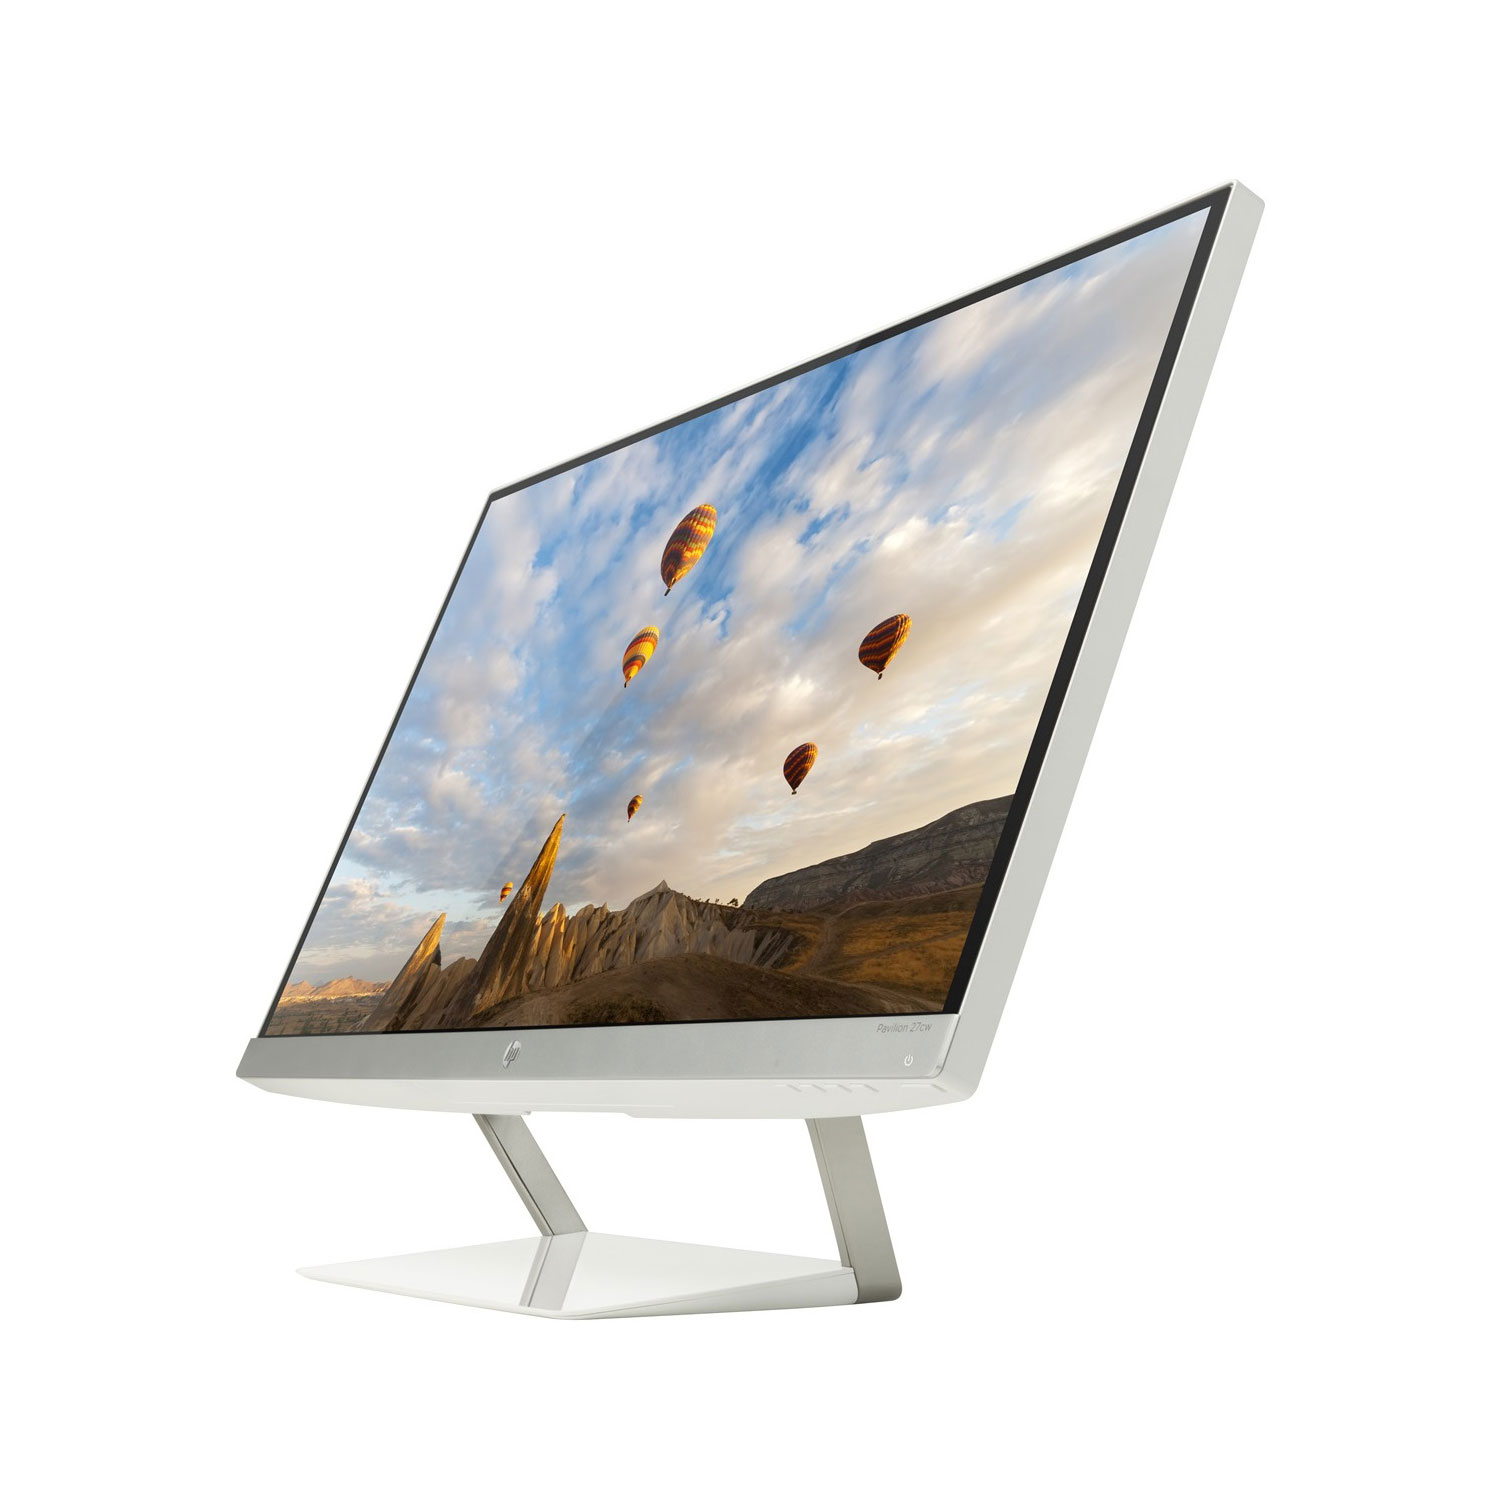 Hp 27 led pavilion 27xw ecran pc hp sur for Dalle ips 27 pouces